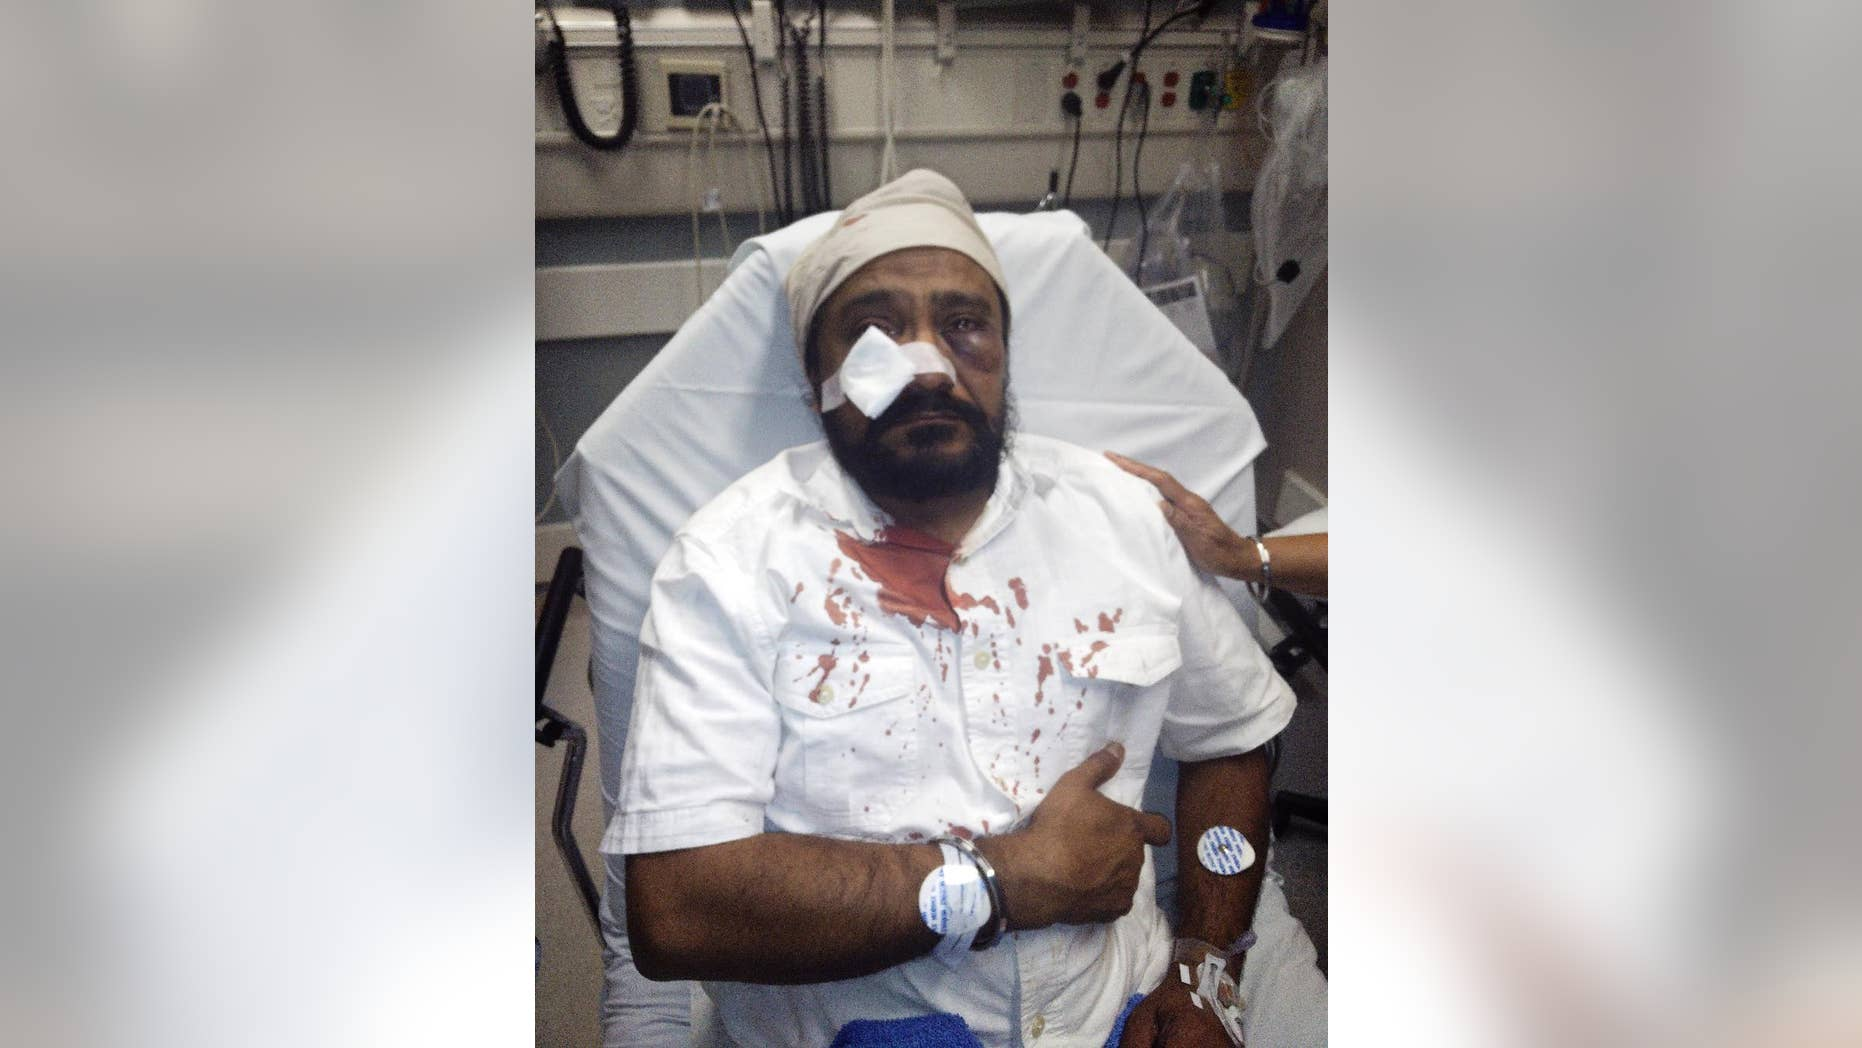 In this Sept. 8, 2015 photo provided by The Sikh Coaliton, 53-year-old Inderjit Mukker is seen at a hospital in Hinsdale, Ill., following an attack authorities say was a road rage incident in Darien, Ill. On Tuesday, Sept. 15, prosecutors said a suburban Chicago teenager who had already been charged with punching the Sikh man has now been charged with a hate crime. (The Sikh Coalition via AP)